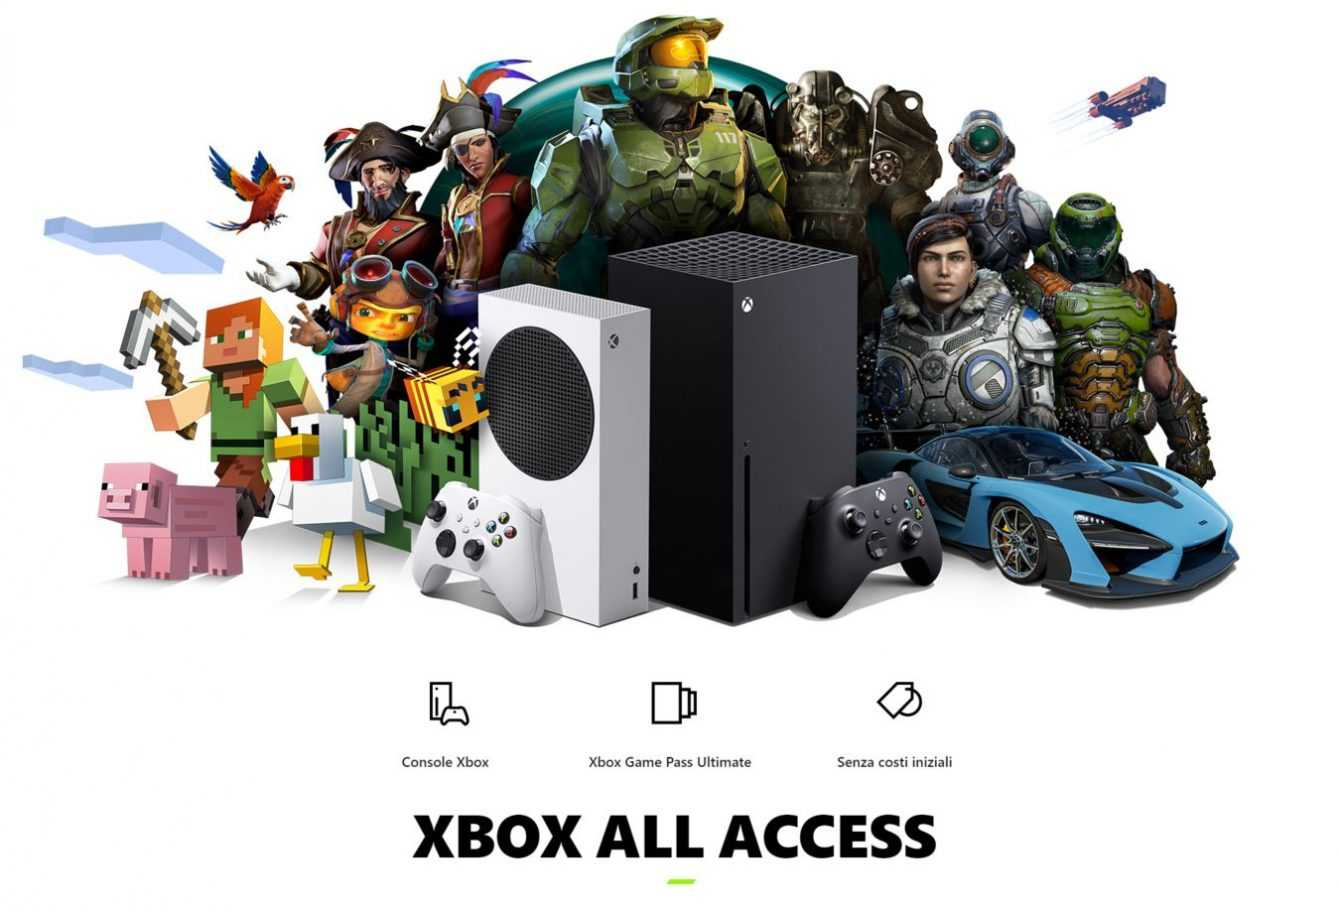 Xbox All Access is finally available in Italy